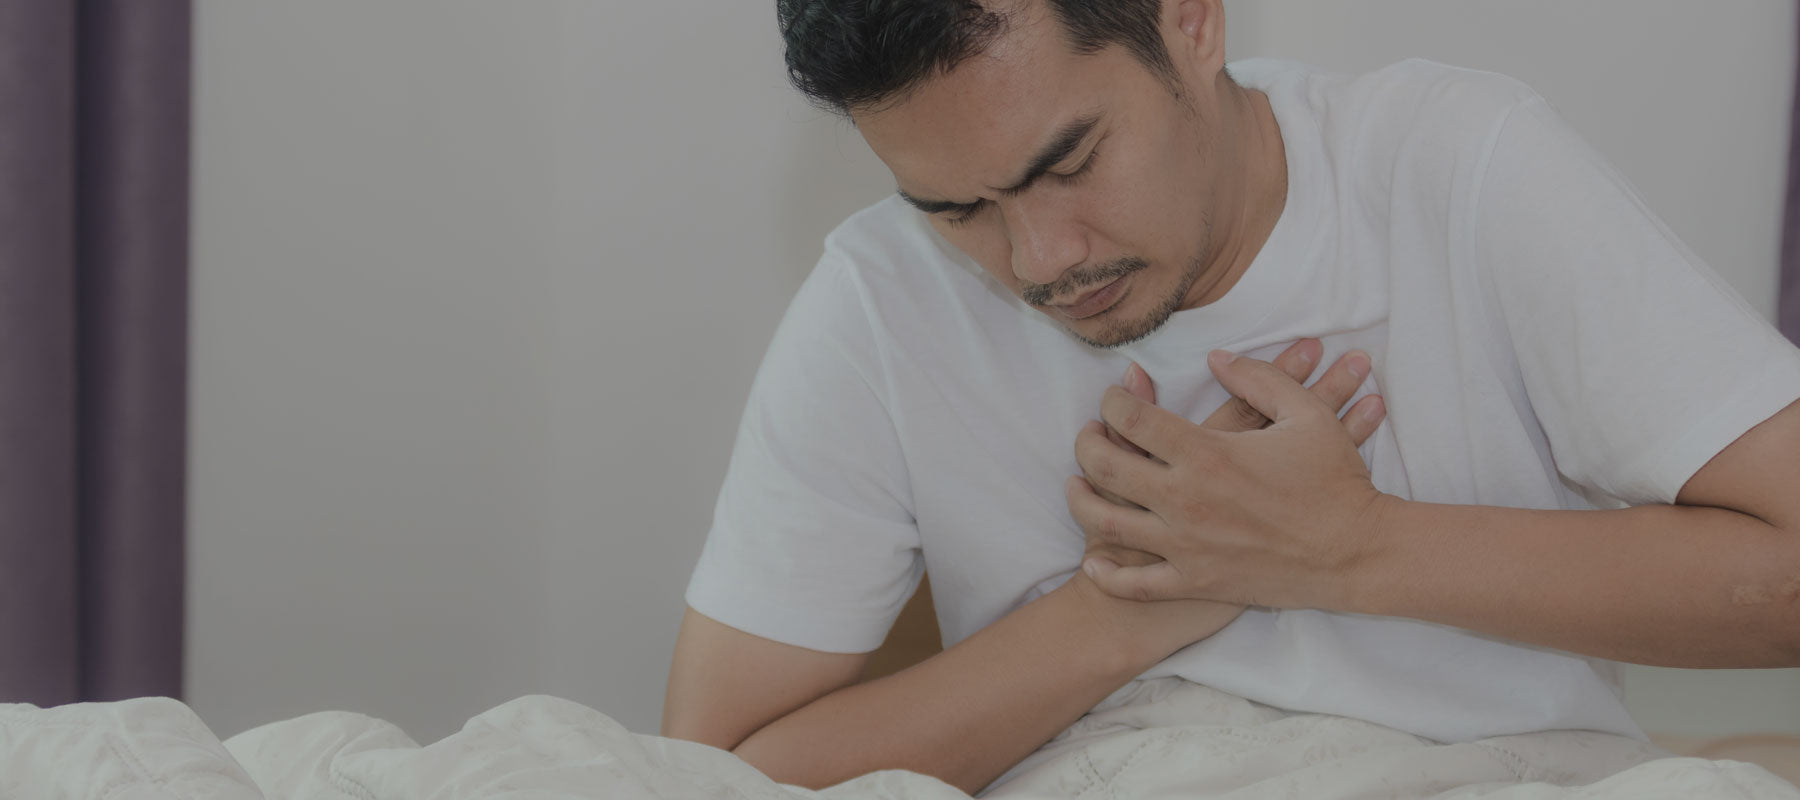 How to Sleep With Acid Reflux and Heartburn